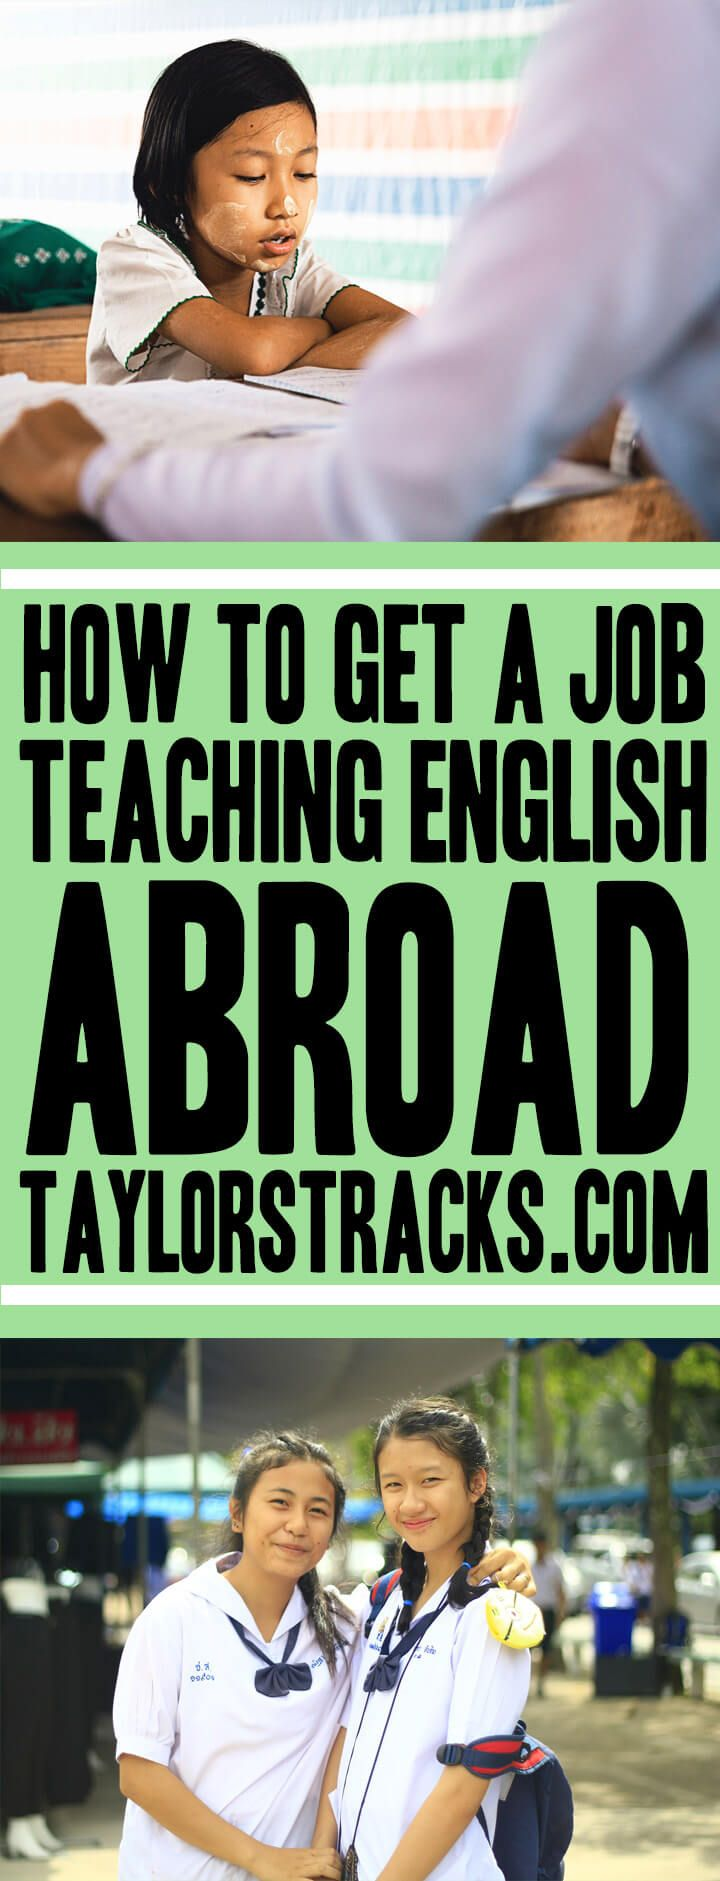 How-to-Get-a-Job-Teaching-English-Abroad-www.taylorstracks.com